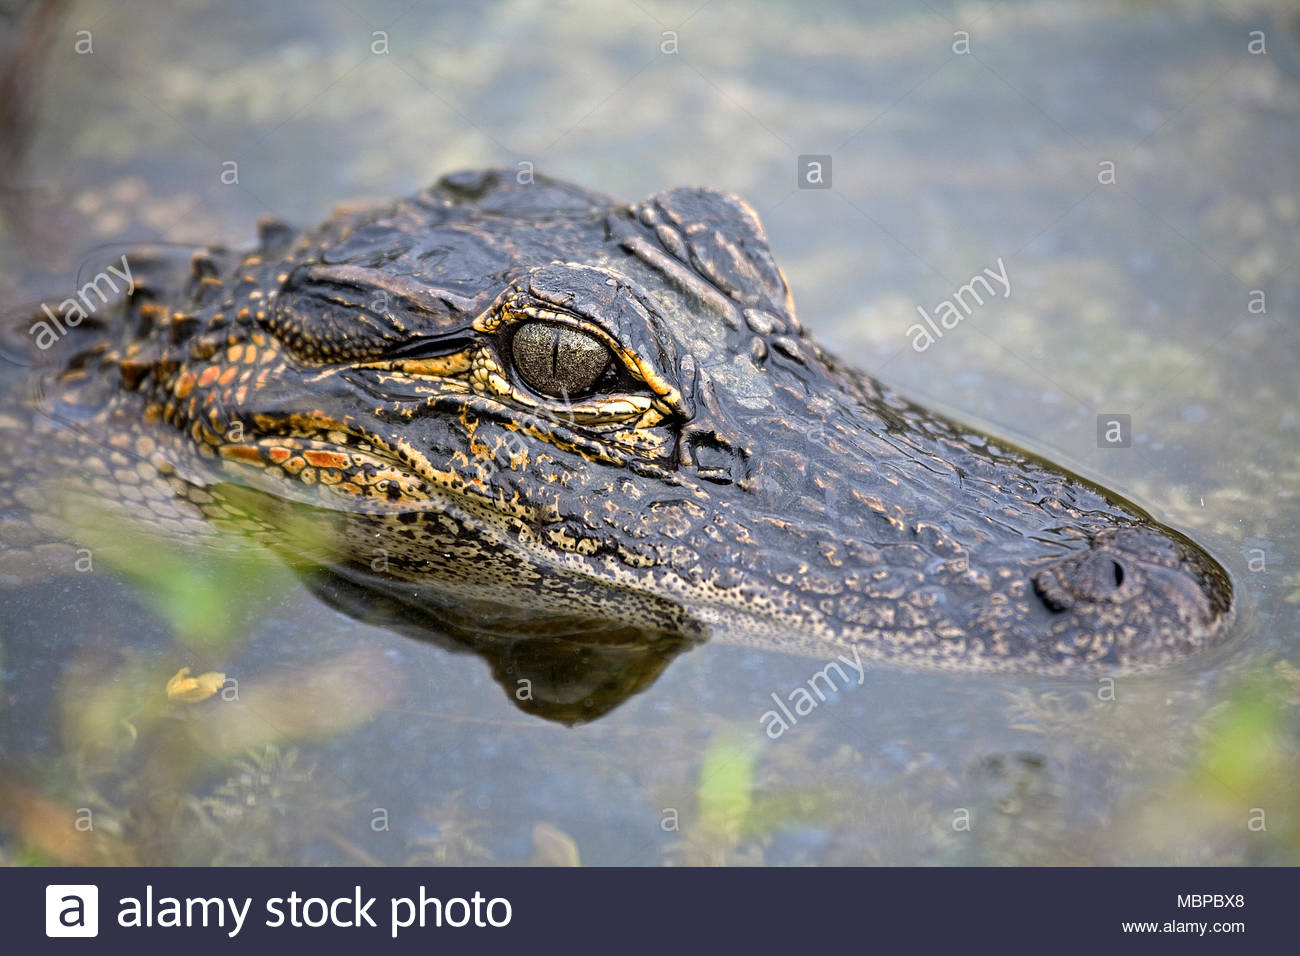 Mississippi alligator (Alligator mississippiensis), juvenile, head, Everglades, Florida, USA - Stock Image